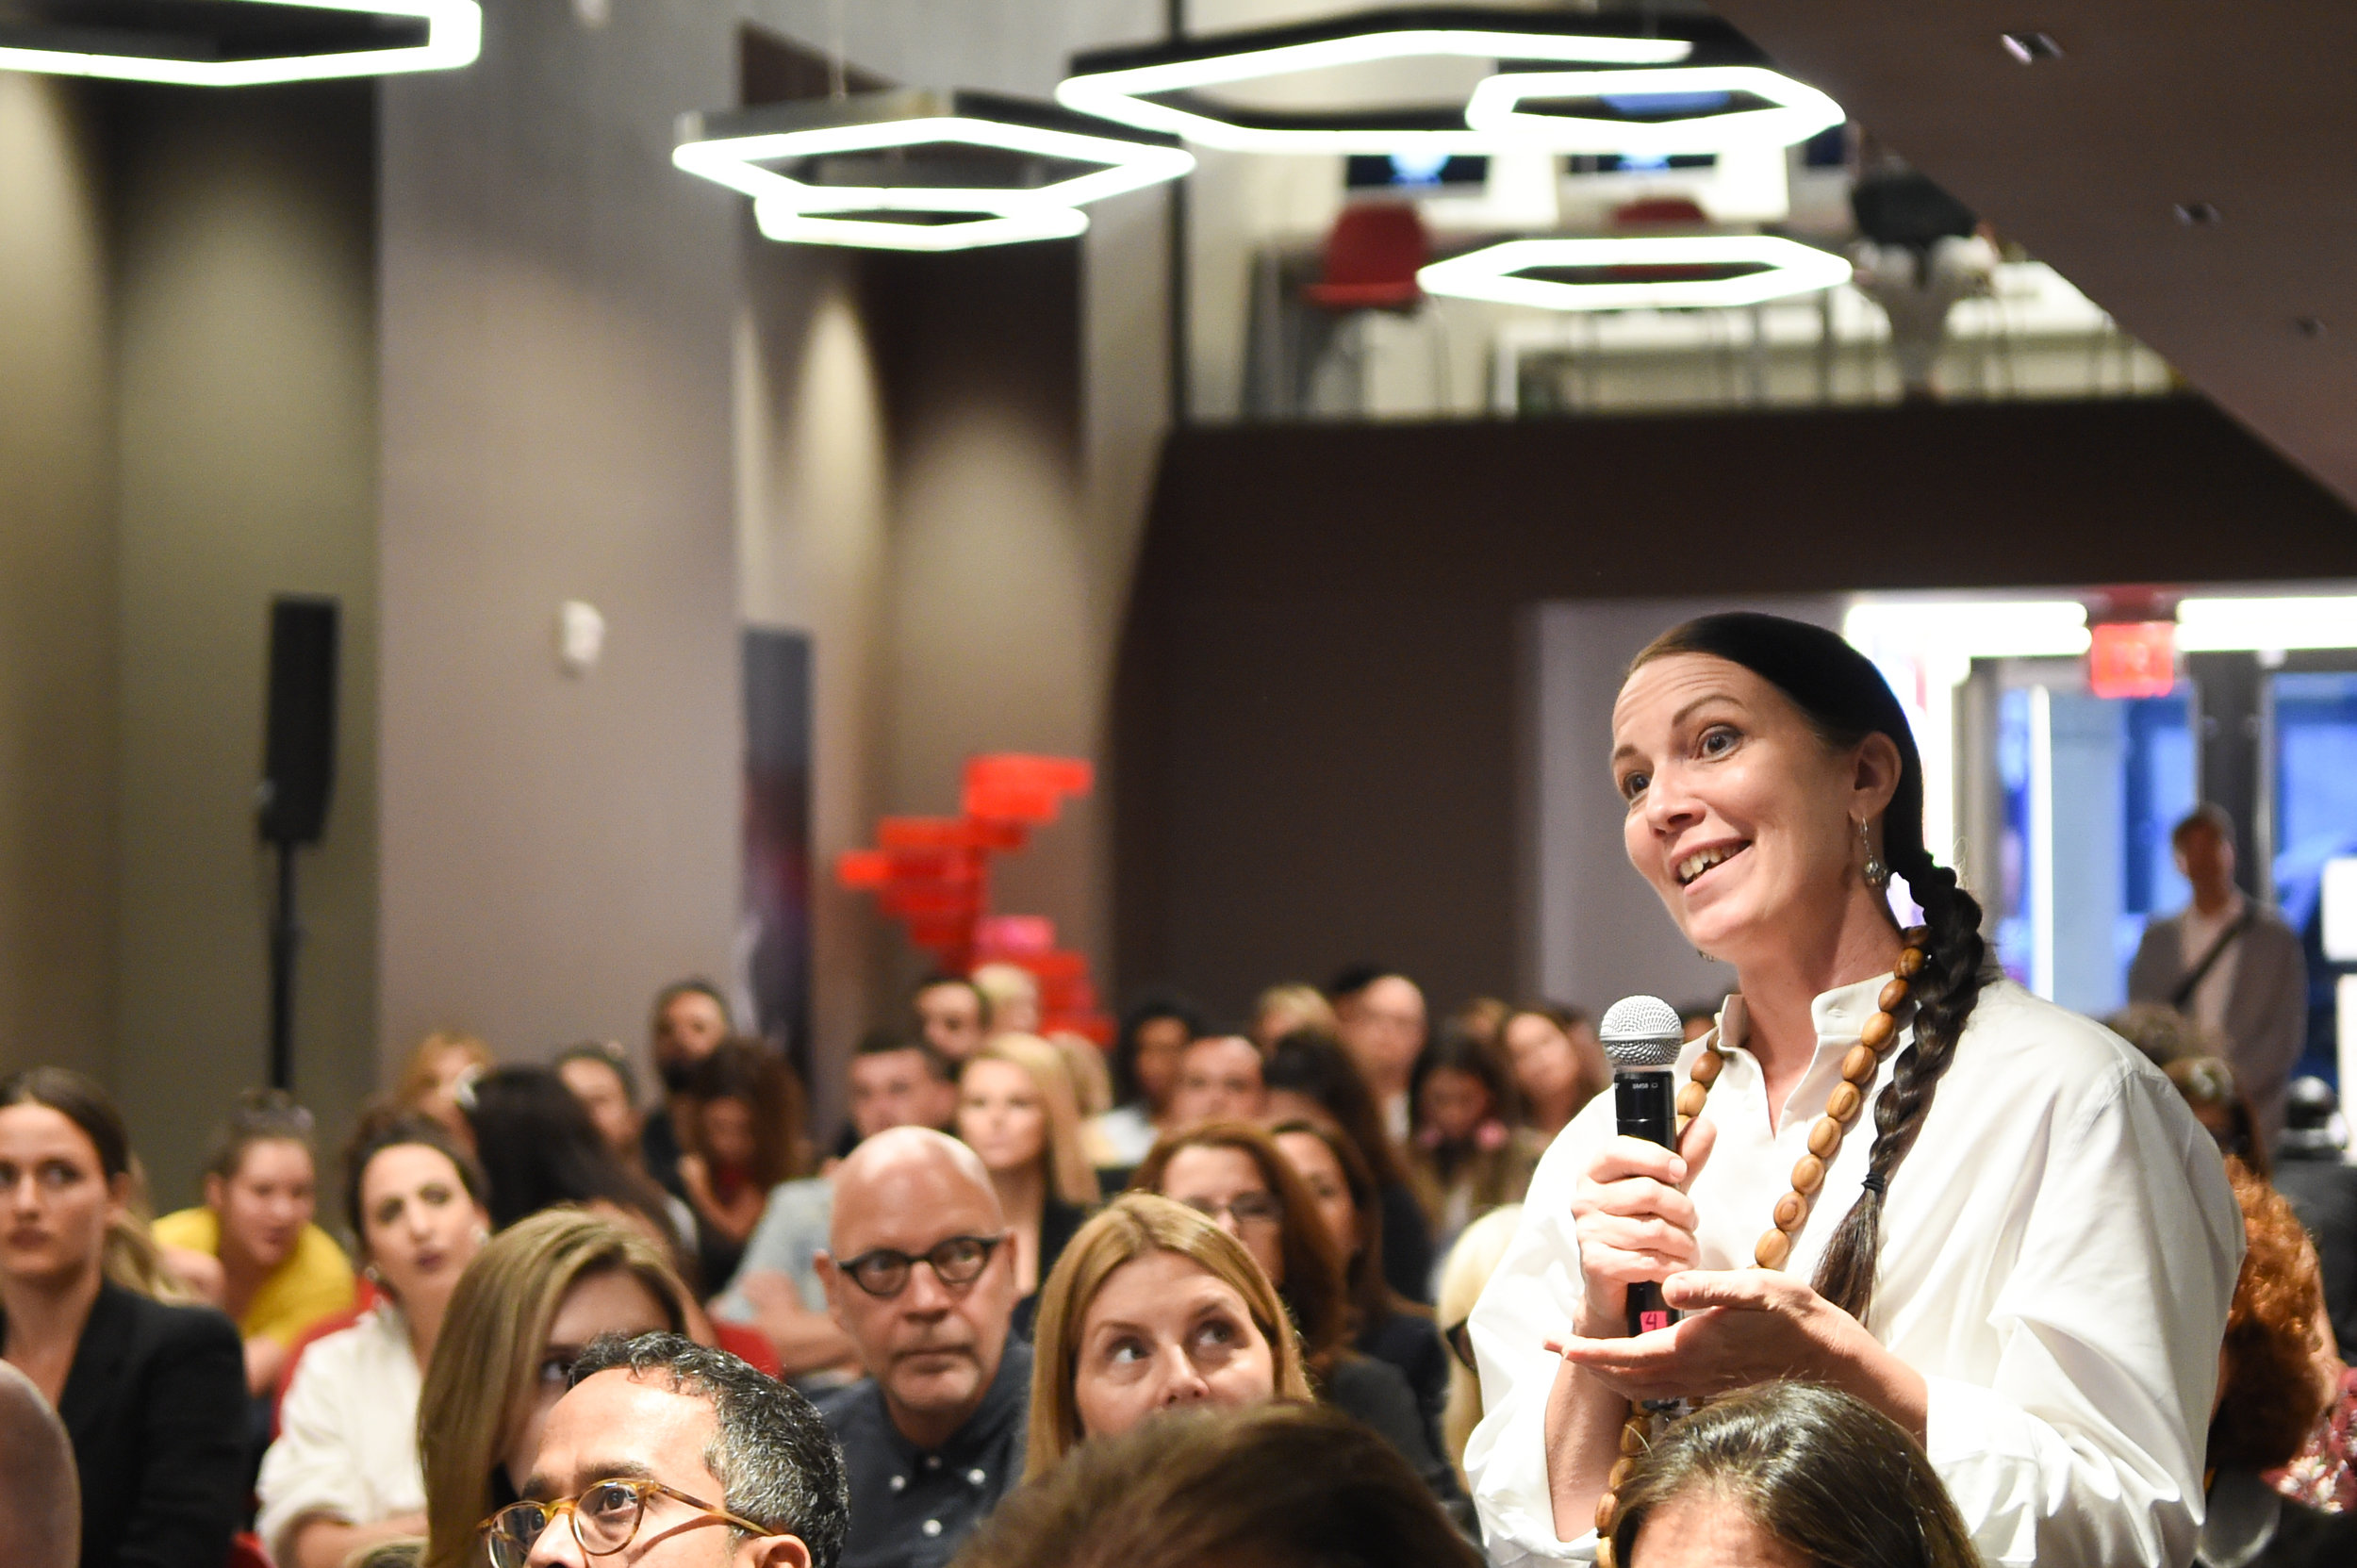 Adrianne Bon Haes speaking1.JPG